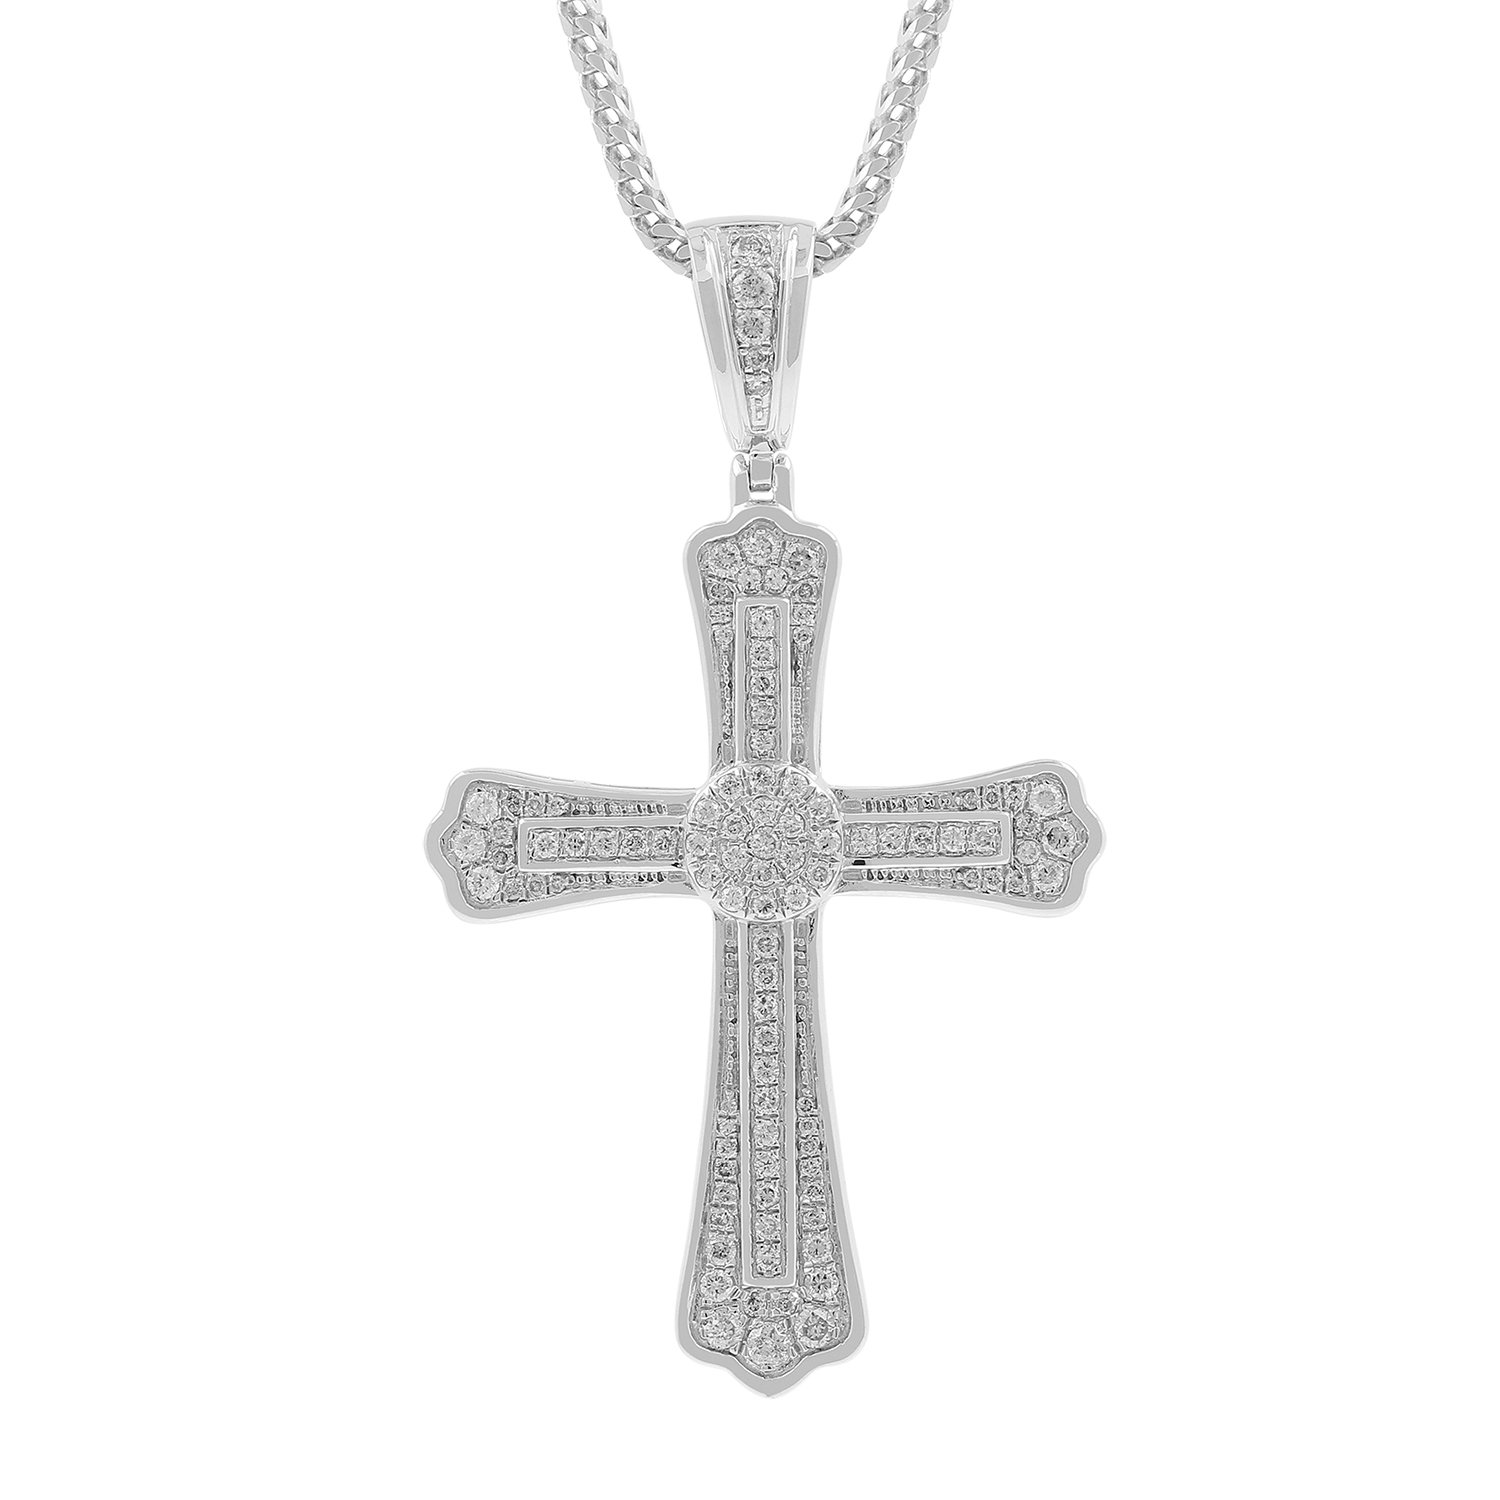 1.05ct Diamond Cross Religious Mens Hip Hop Pendant Necklace in 925 Silver (I-J, I2-I3)